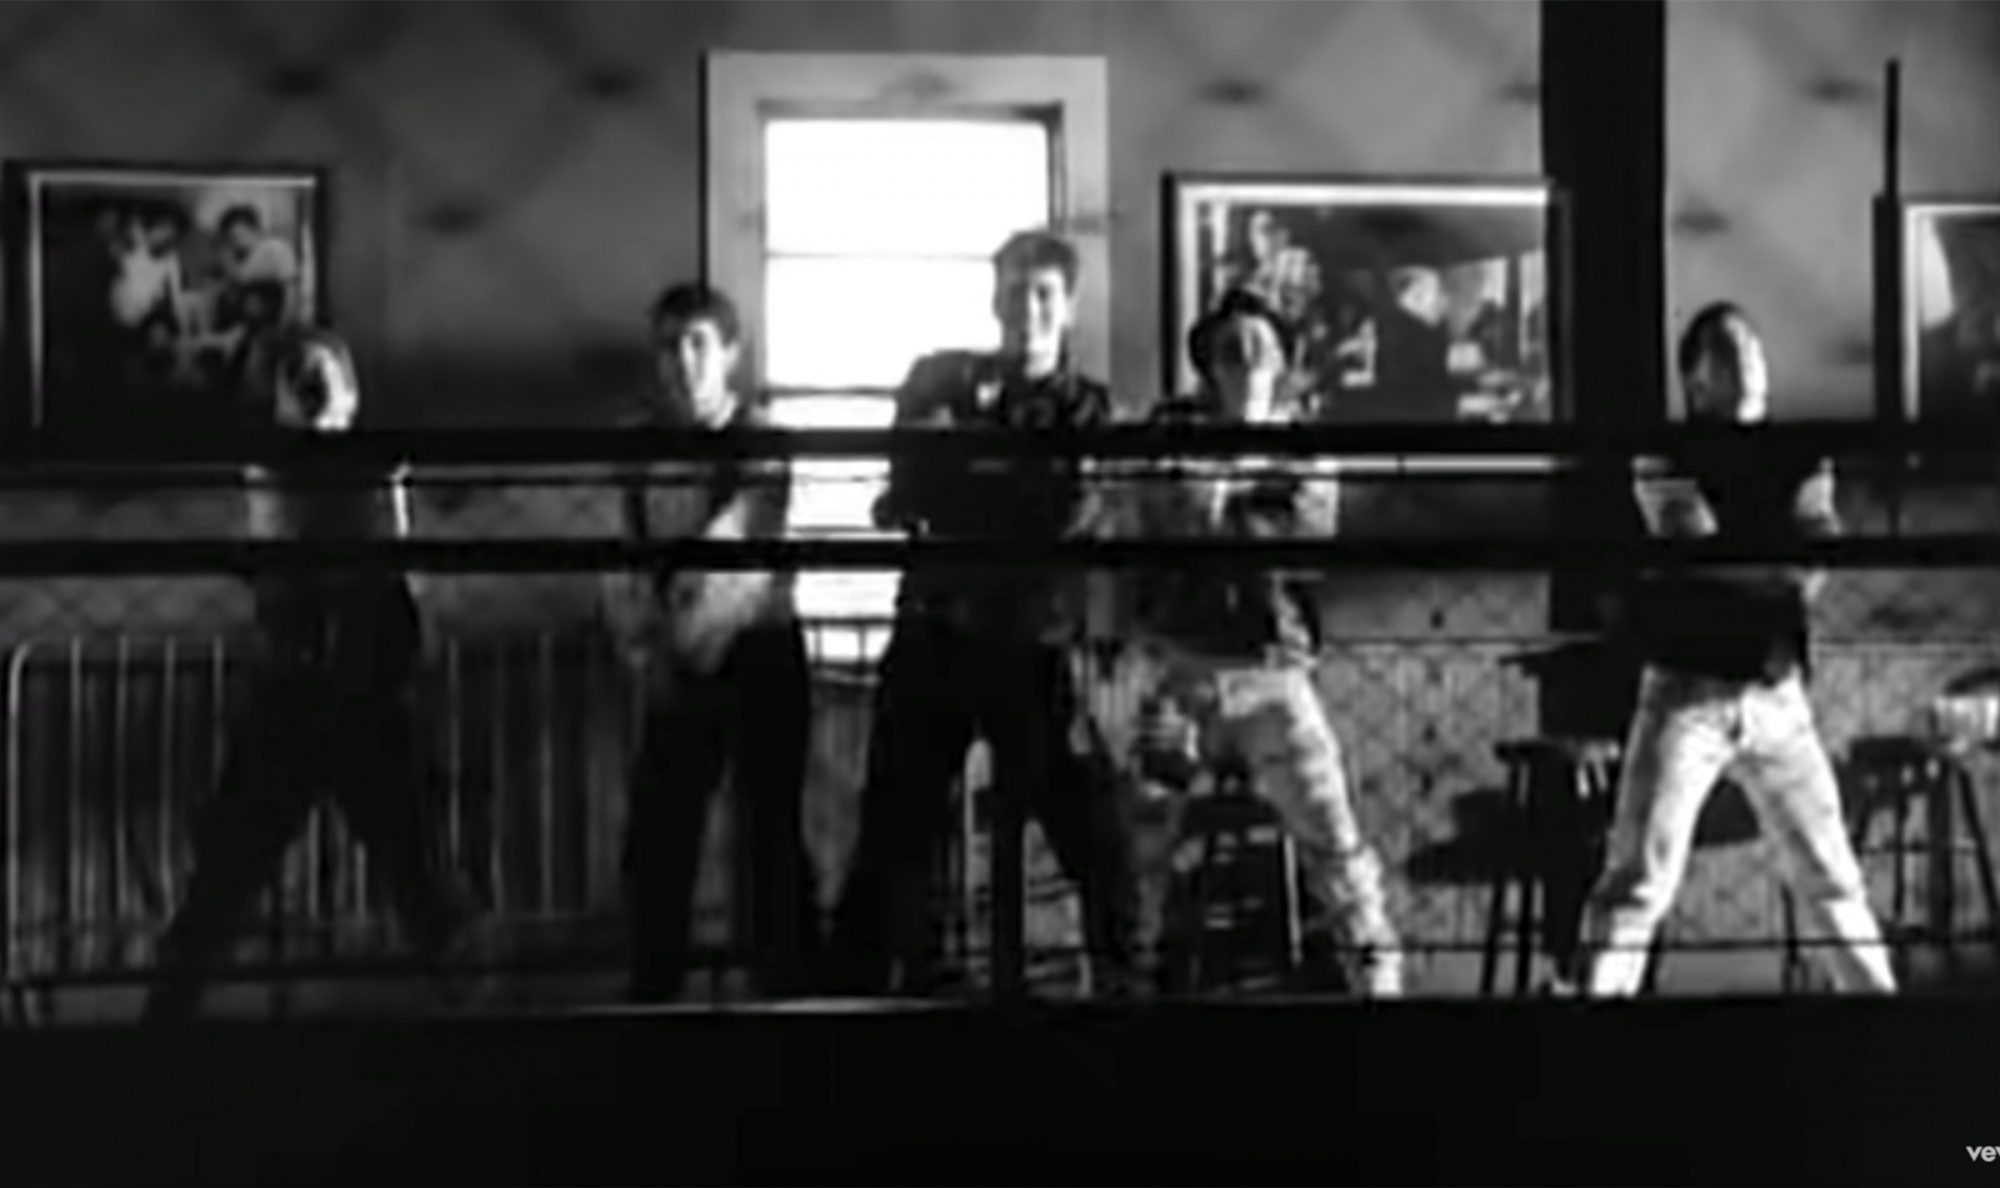 New Kids on the Block - You Got It (The Right Stuff)